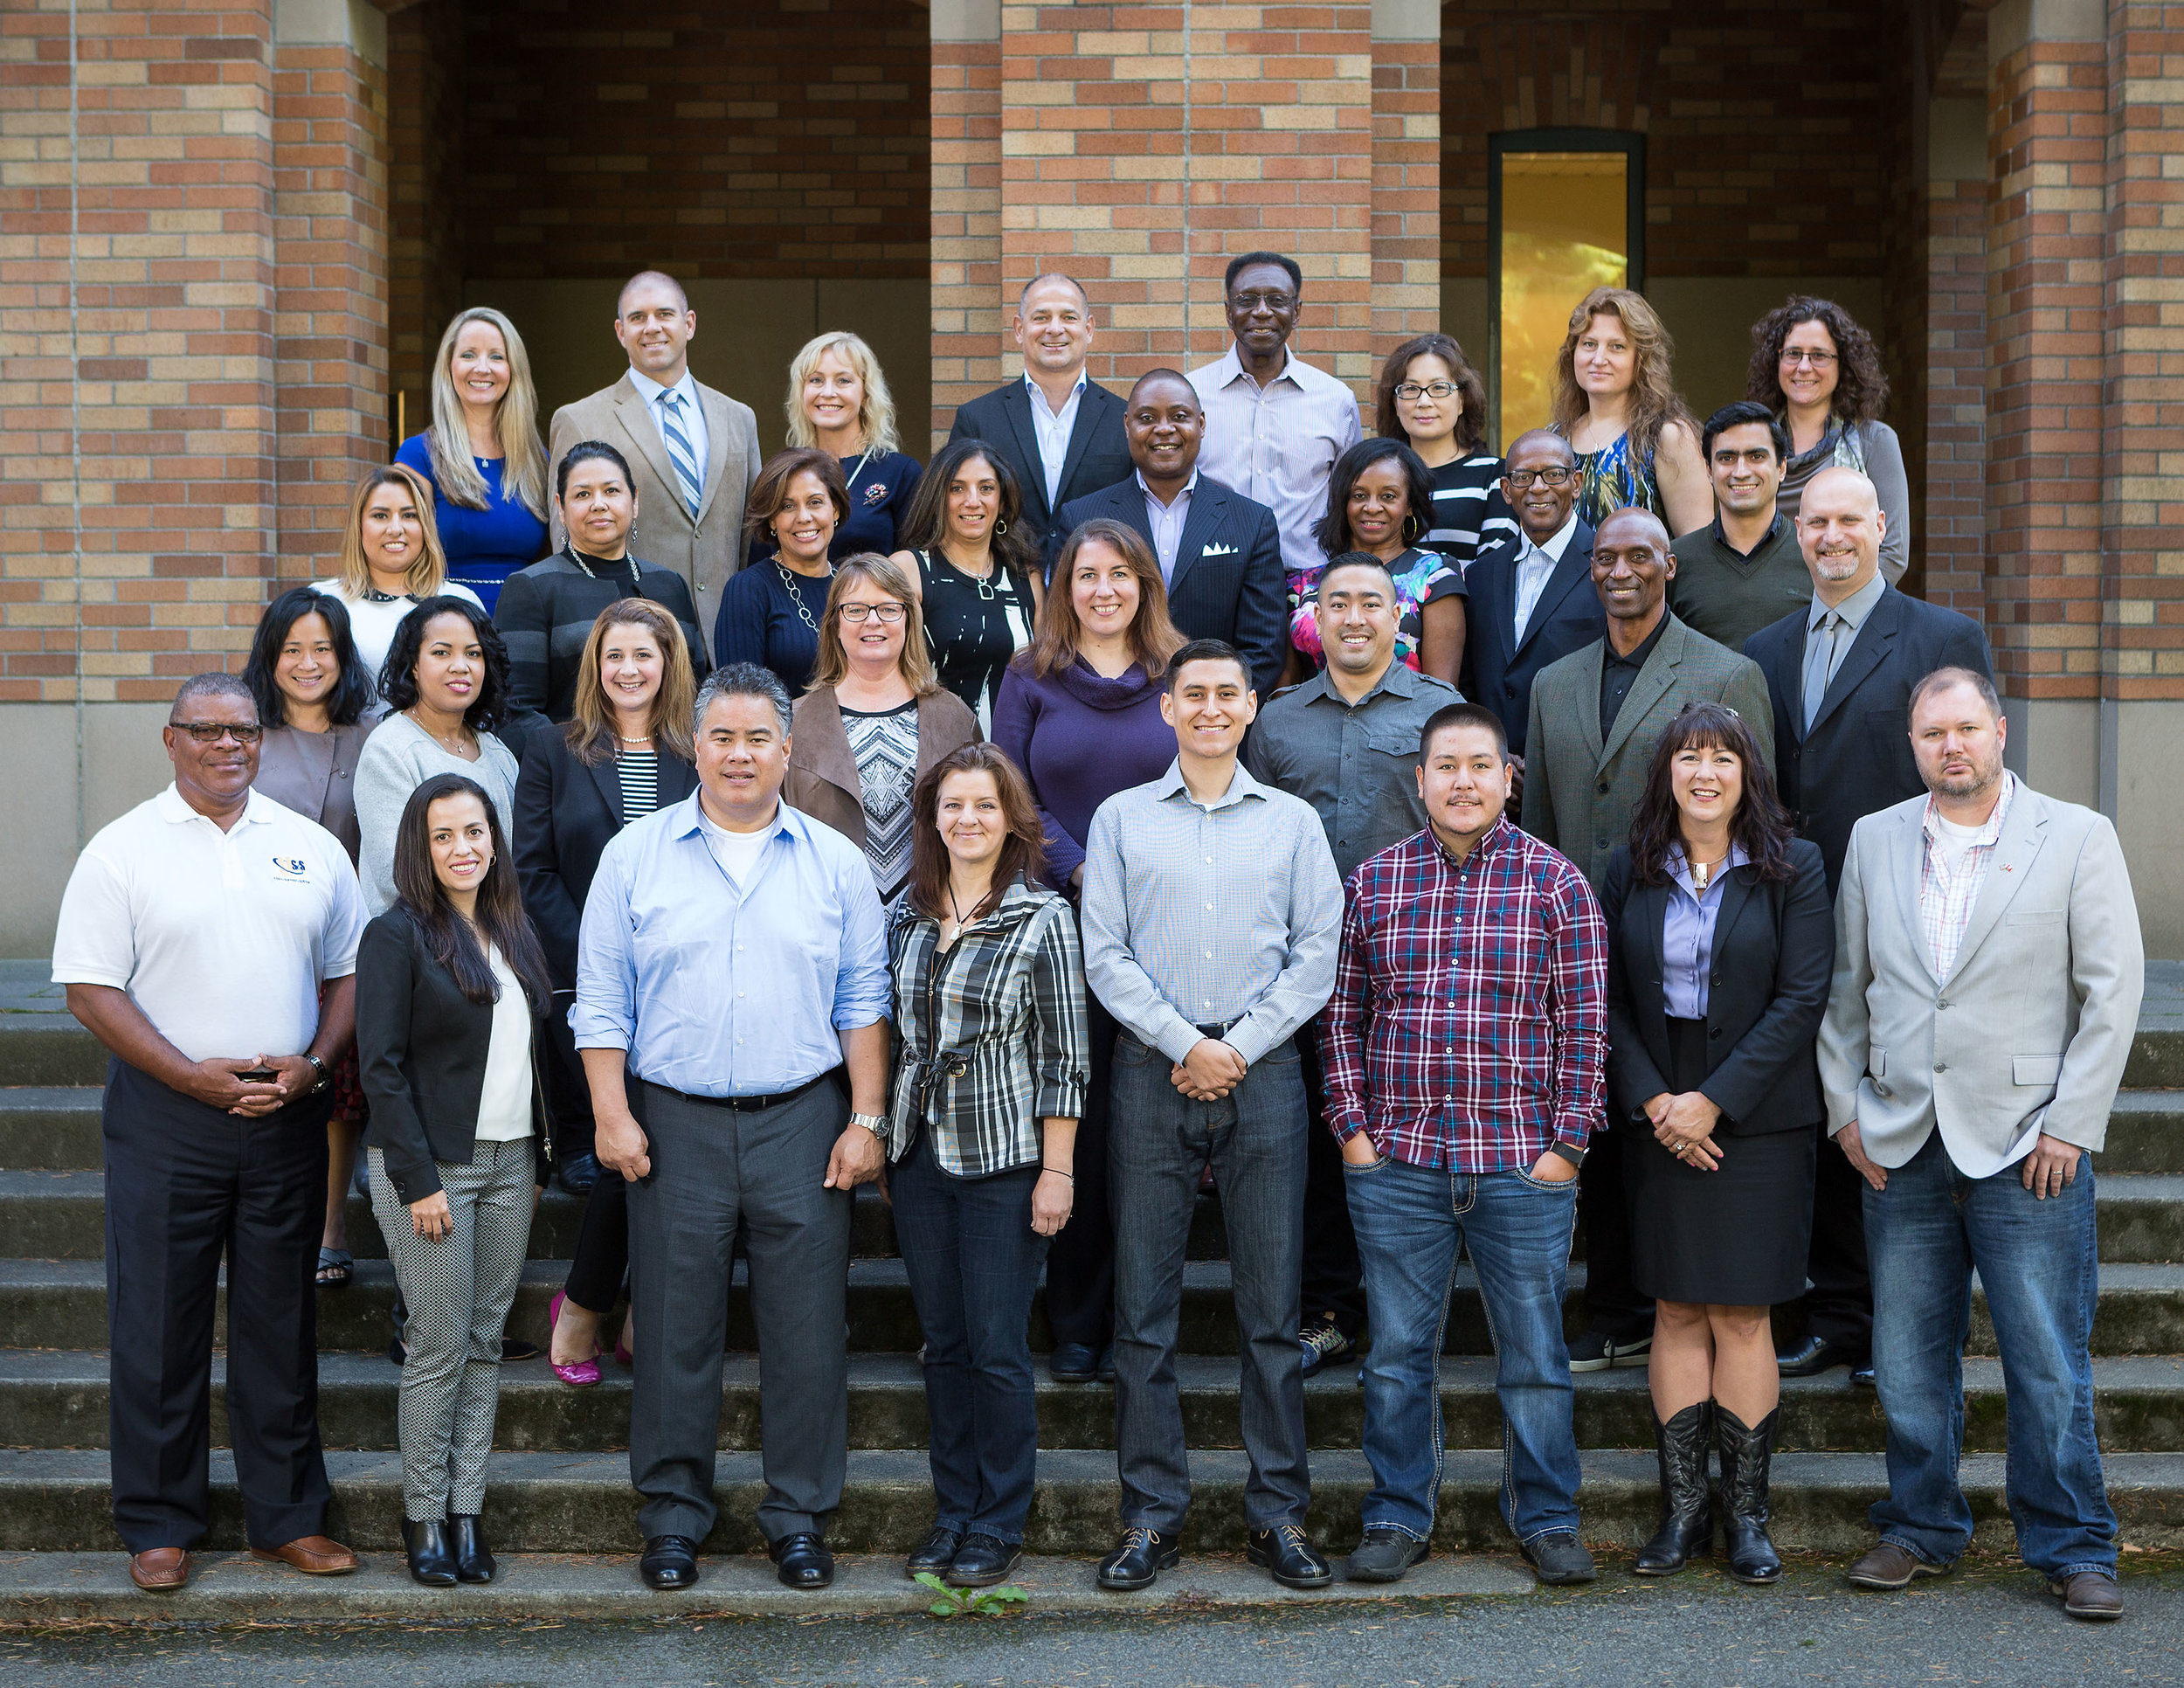 2016 MBEP Group at Michael G. Foster School of Business, University of Washington, Seattle.